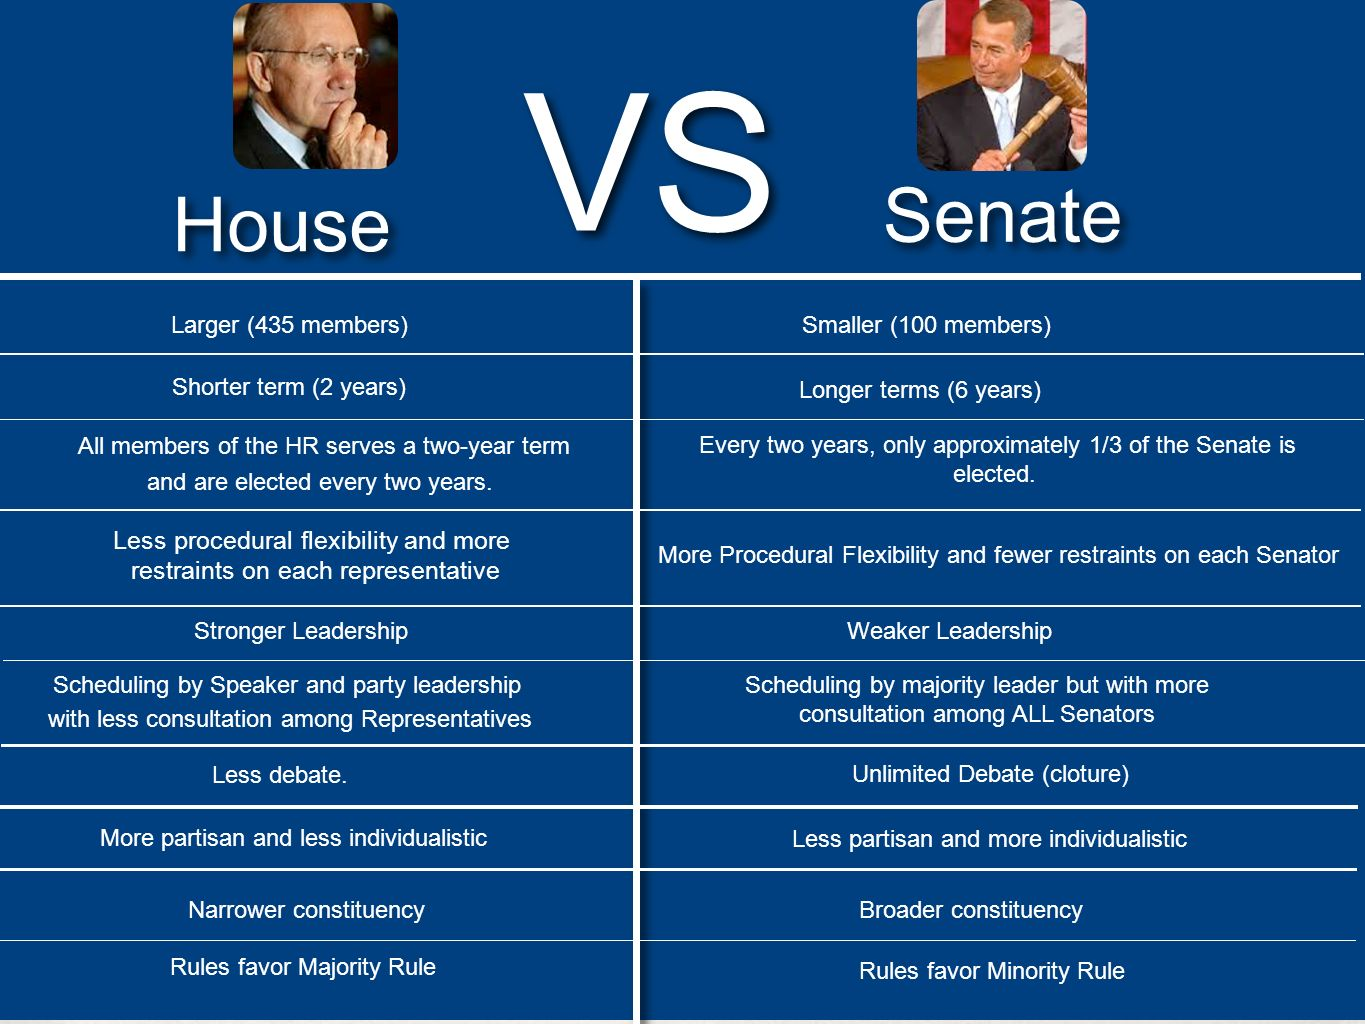 House Senate Larger (435 members) Shorter term (2 years) All members of the HR serves a two-year term and are elected every two years. Less procedural